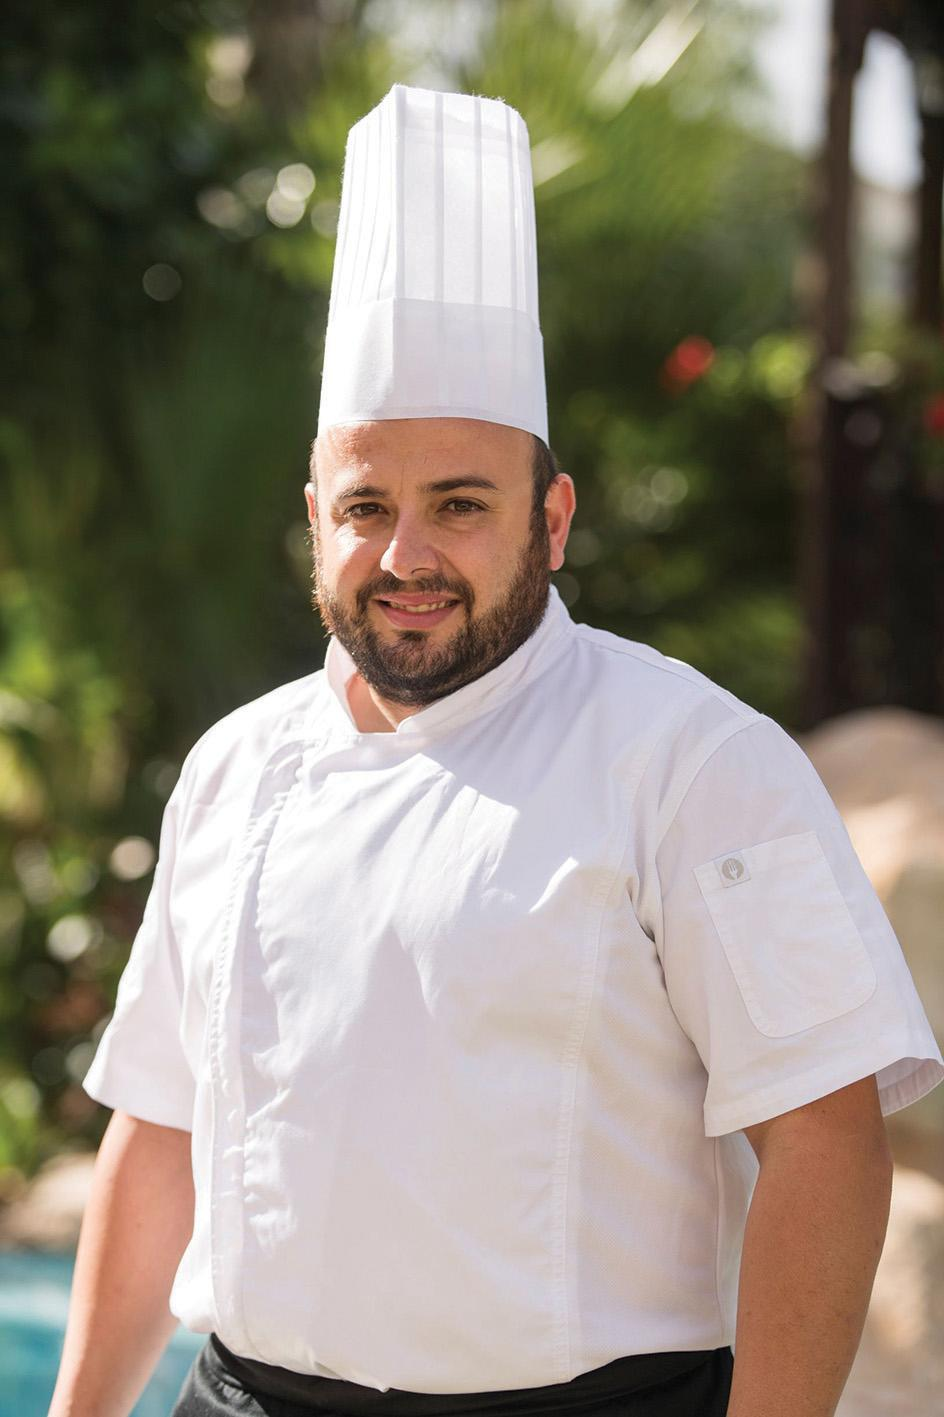 Head chef Glenn Bartolo